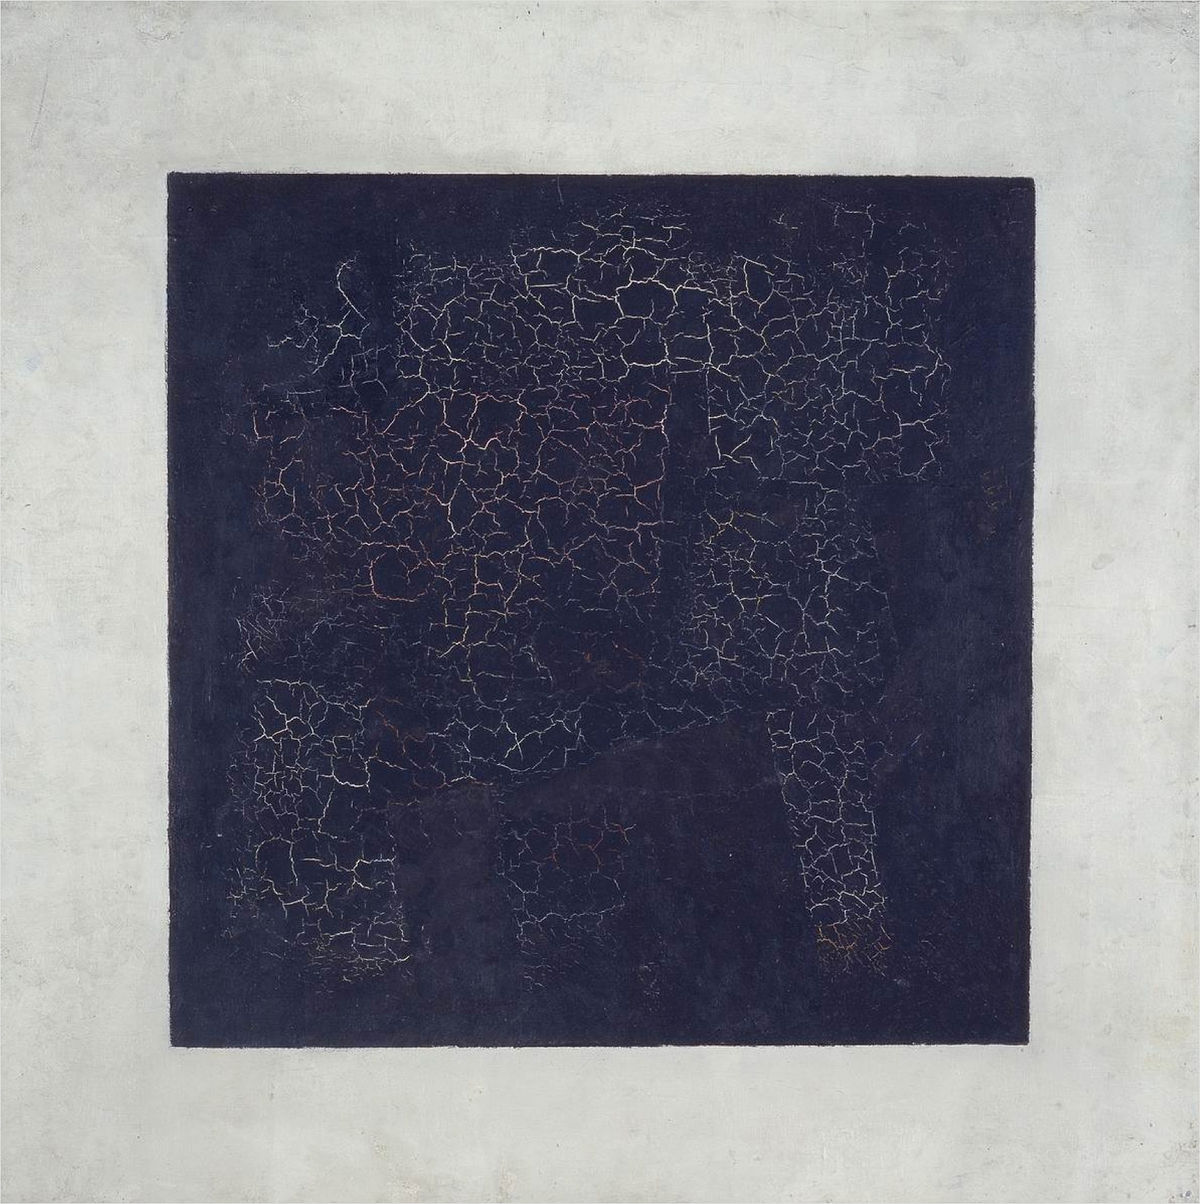 1200px-Kazimir_Malevich,_1915,_Black_Suprematic_Square,_oil_on_linen_canvas,_79.5_x_79.5_cm,_Tretyakov_Gallery,_Moscow